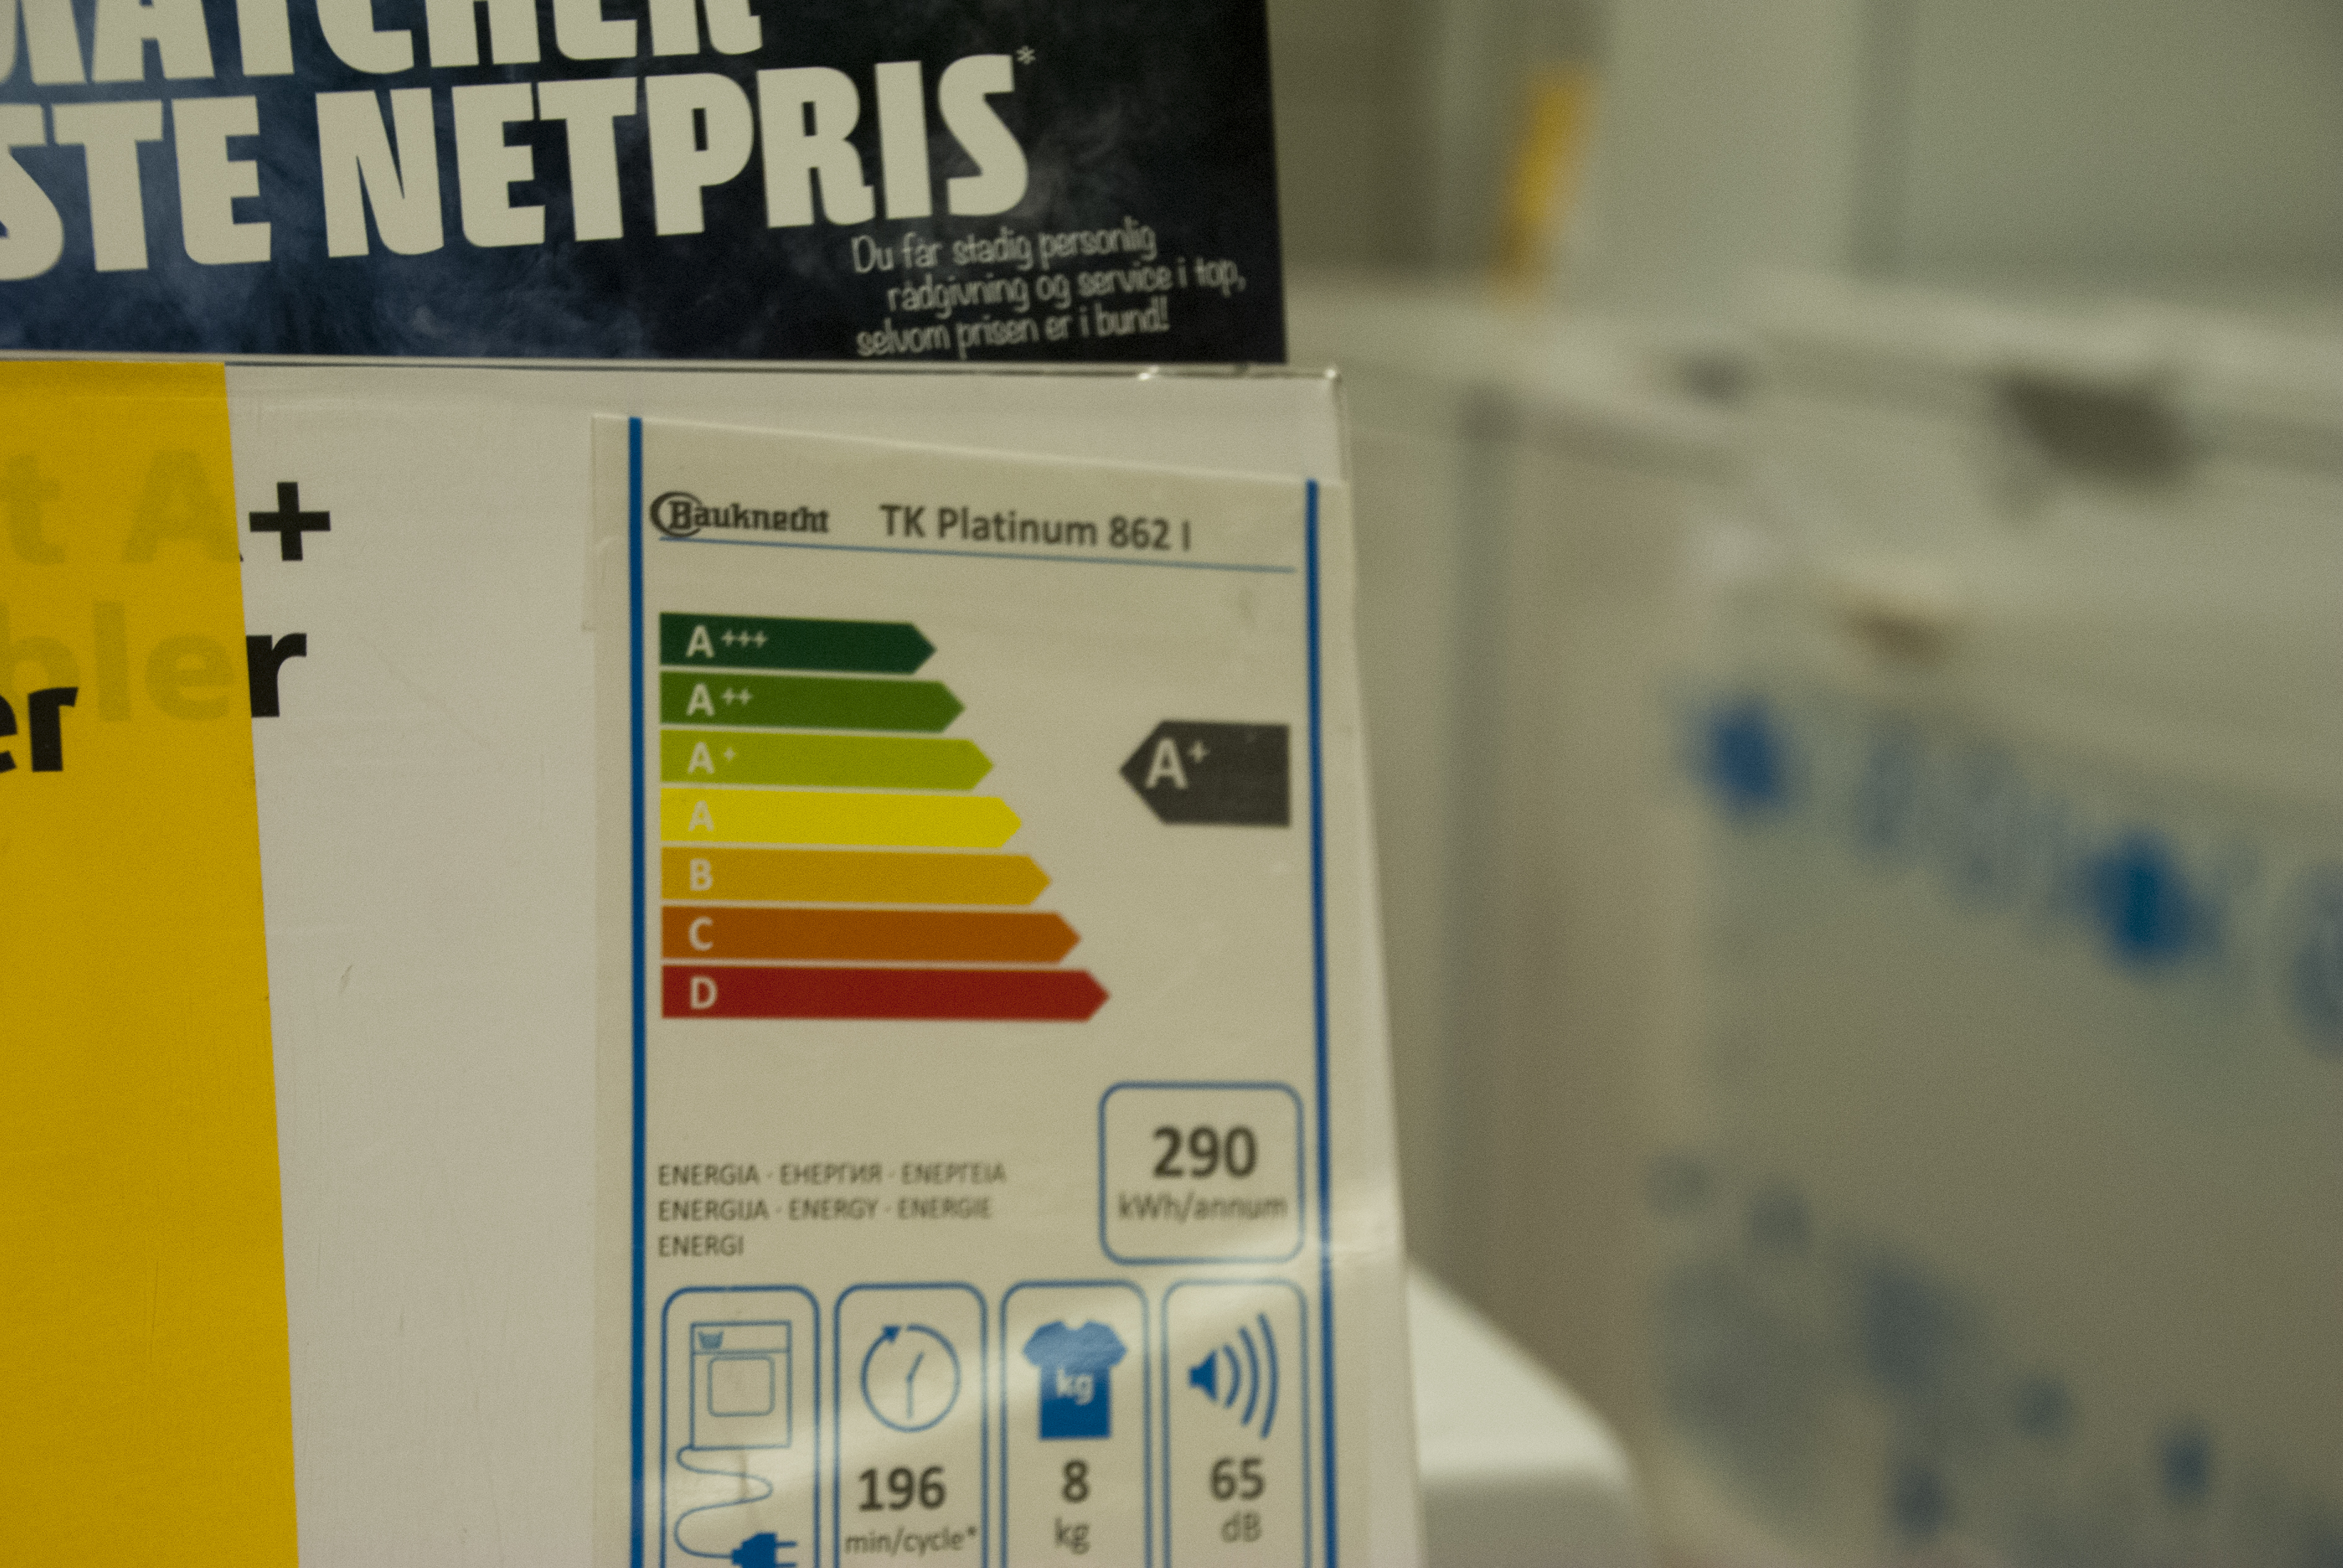 Most home appliances in the EU market, such as hoovers, ovens and refrigerators, require a the energy label